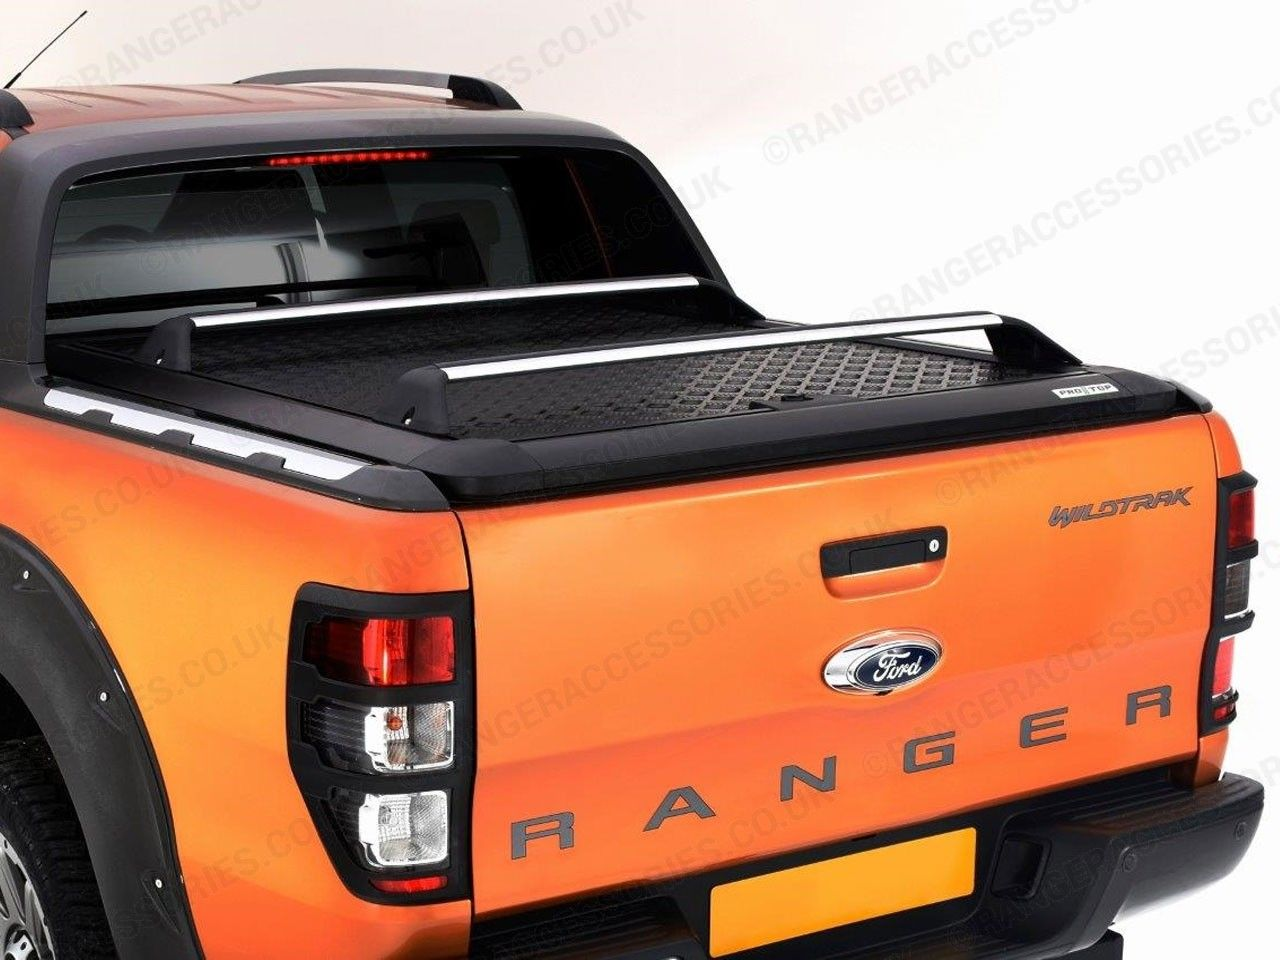 Ford Ranger Wildtrak 2012 On Double Cab Pro Top Lift Up Alu Cover In Black Ford Ranger Wildtrak Ford Ranger Ford Ranger Lifted